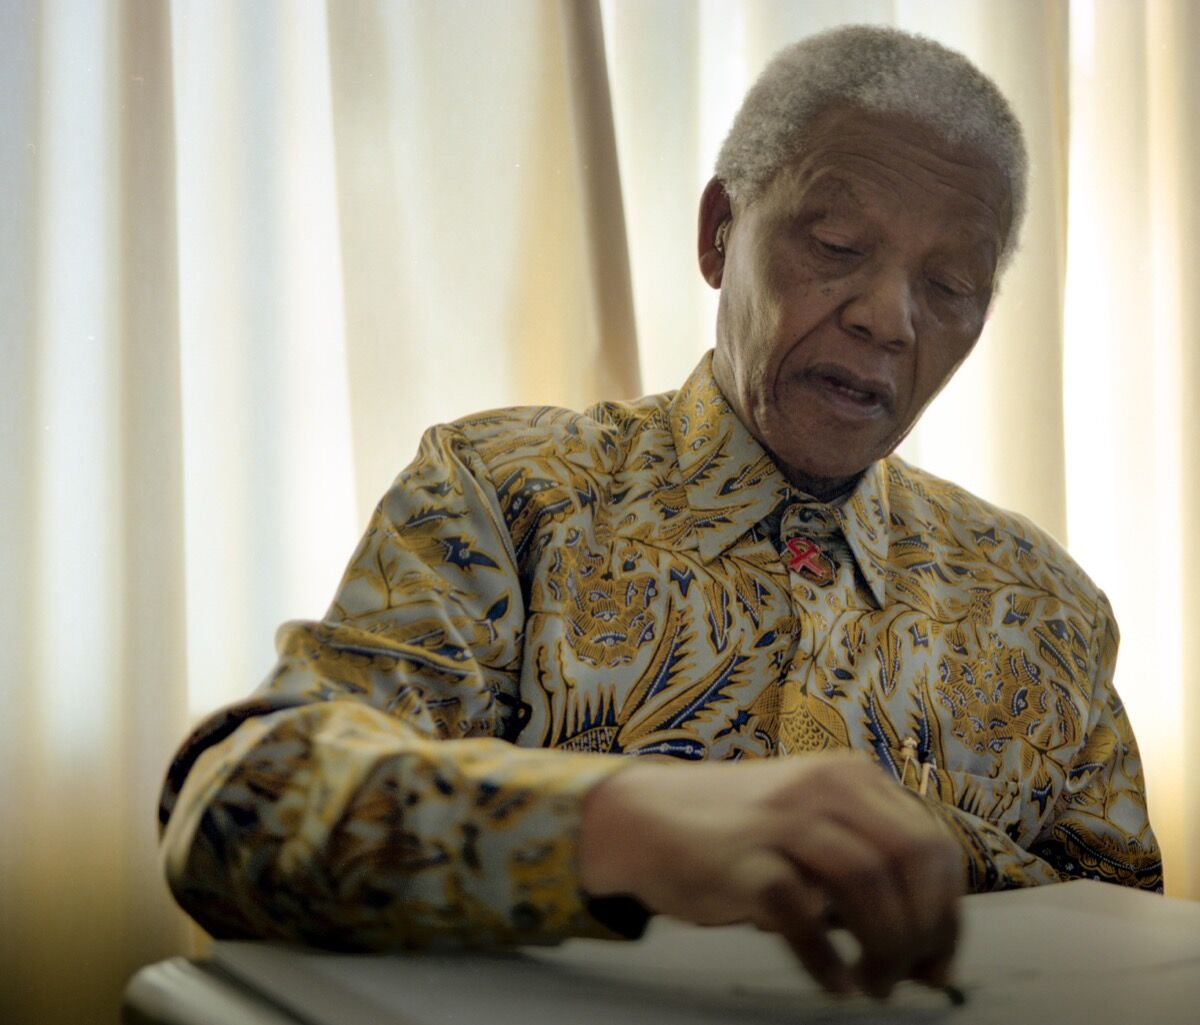 Nelson Mandela drawing. Photo by Grant Warren. Courtesy of WeTransfer and The House of Mandela Art.